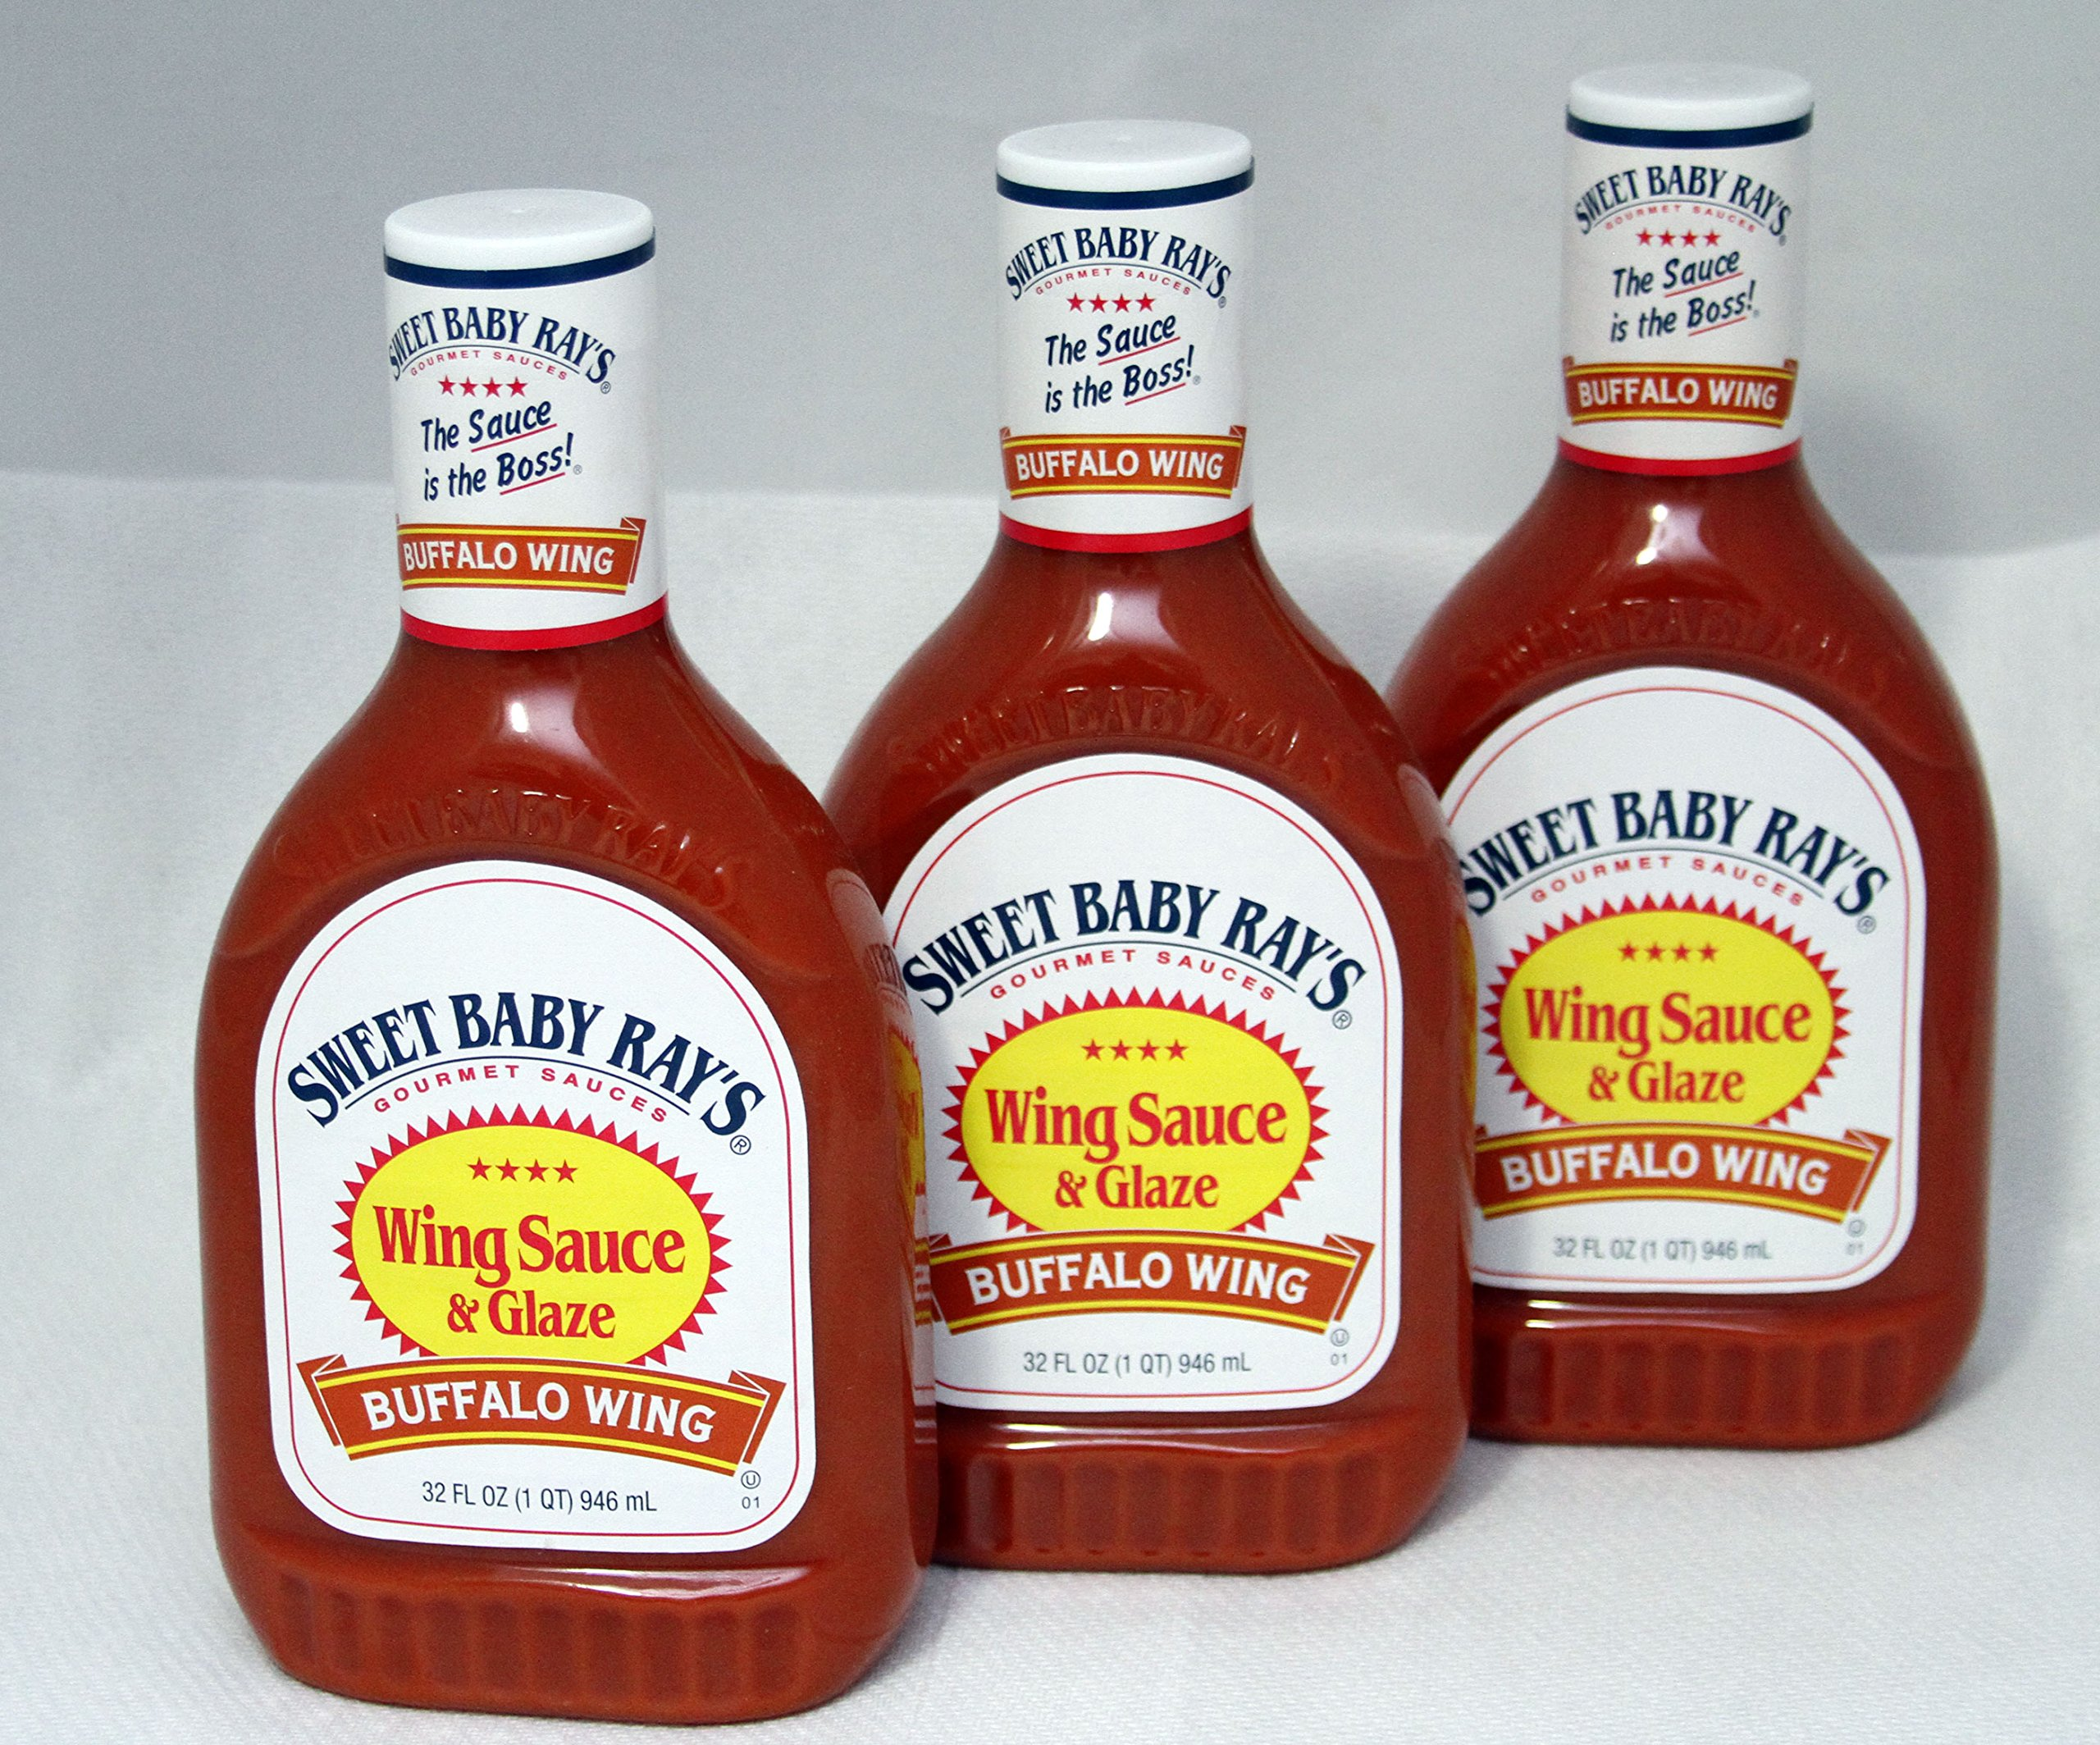 Sweet Baby Ray's Wing Sauce and Glaze, Buffalo Wing, 32 Fl-oz (Pack of 3)